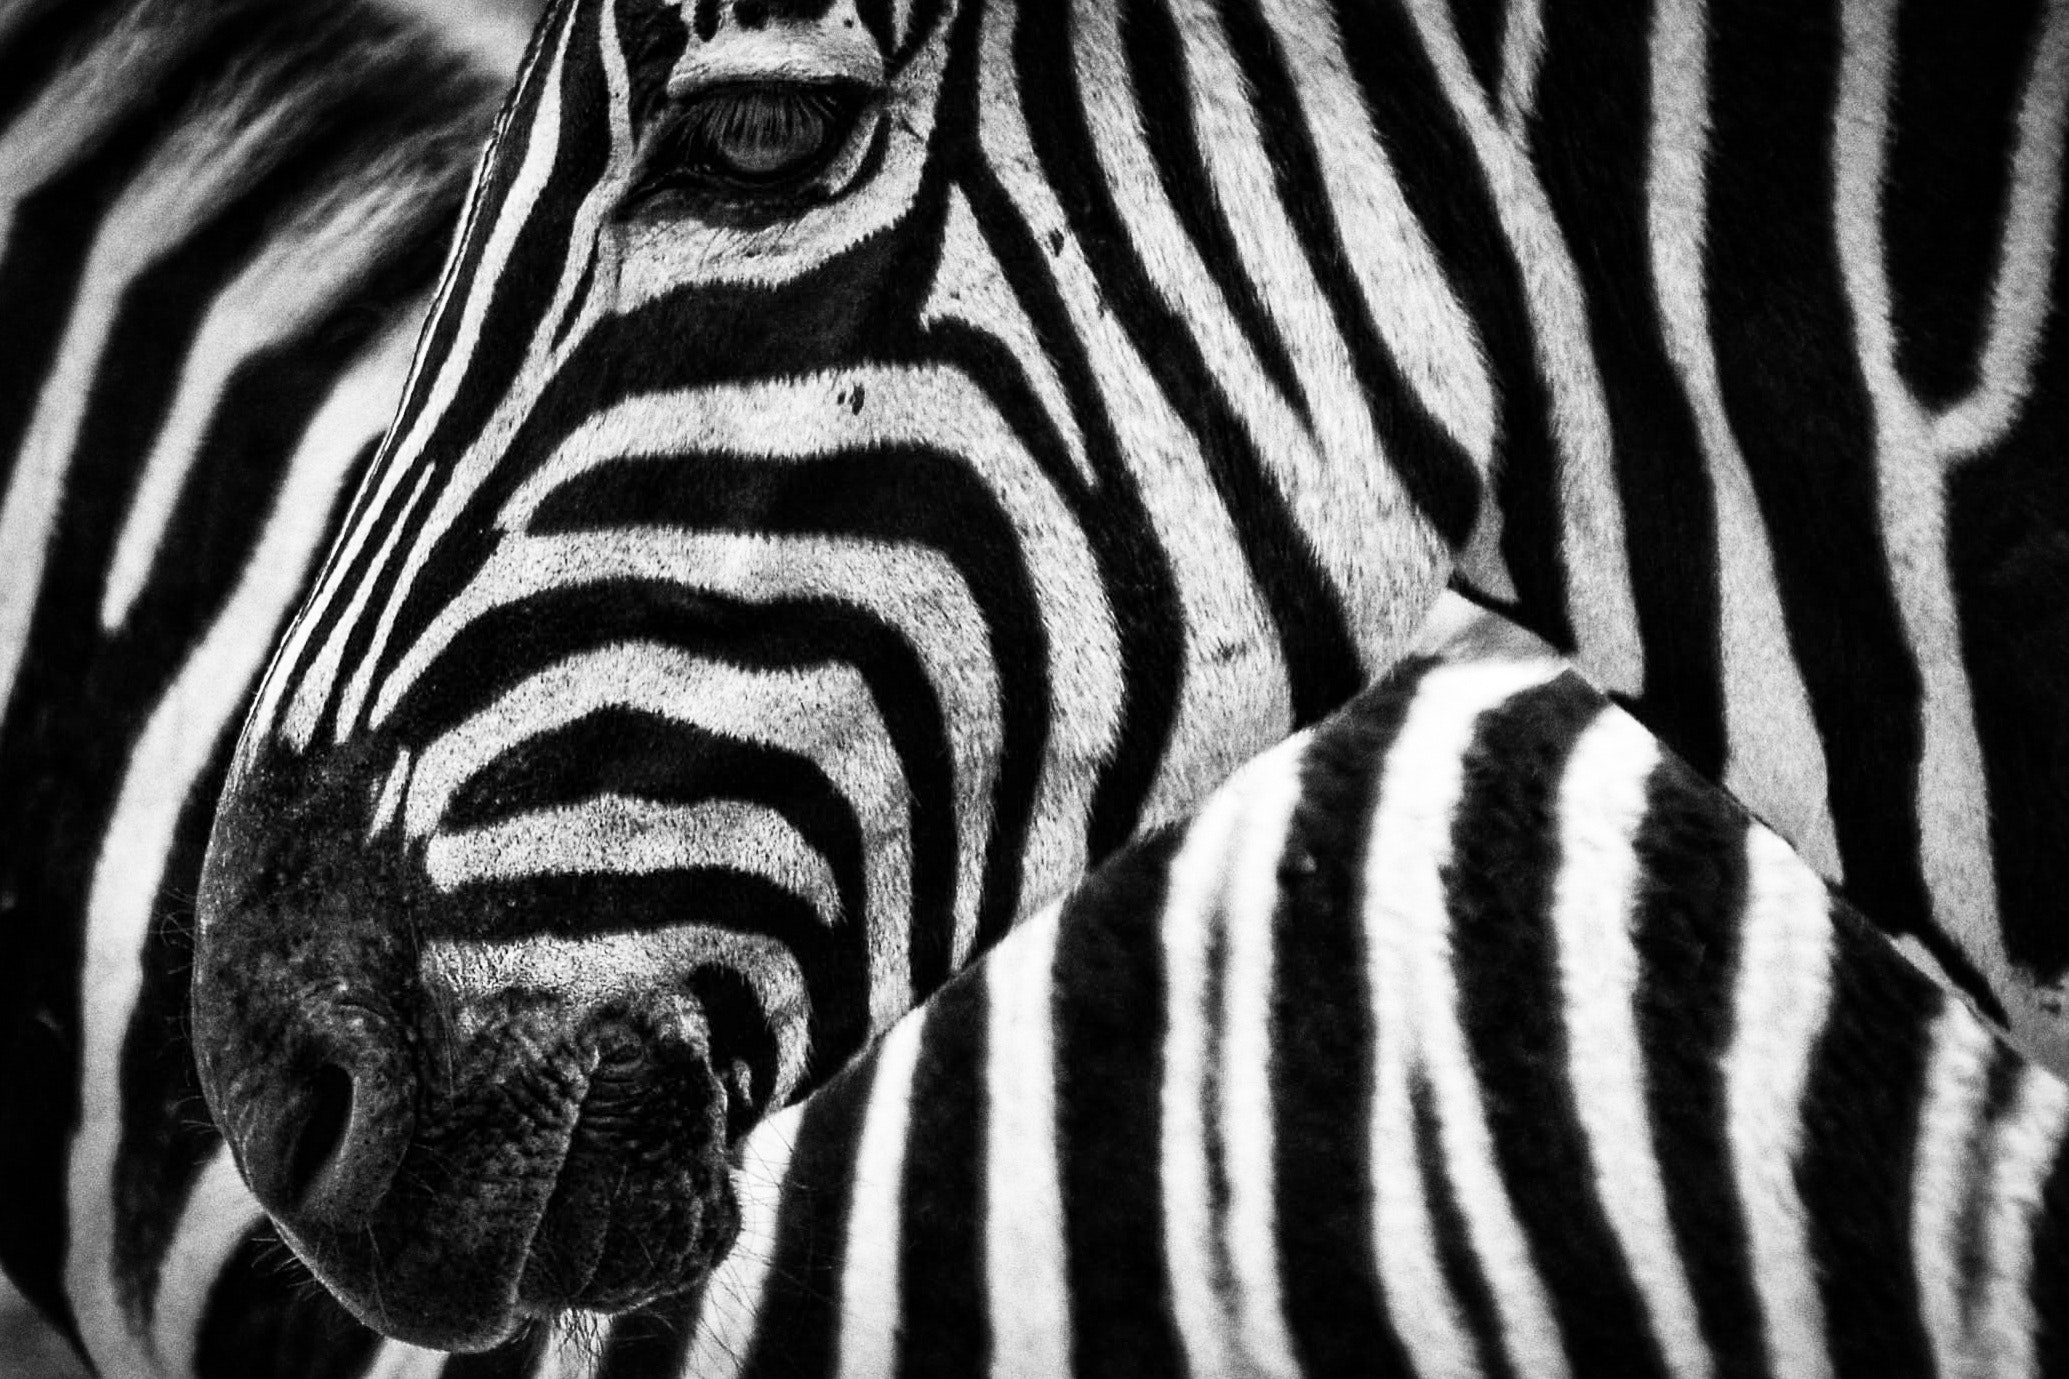 """The zebra is the symbol of The Ehlers-Danlos Society. """"When you hear hoofbeats, think of horses not zebras,"""" is a phrase taught to medical students. It encourages physicians to look to common rather than rare causes for illness. EDS is rare and is commonly overlooked resulting in the decades long diagnosis quest for most EDSers."""